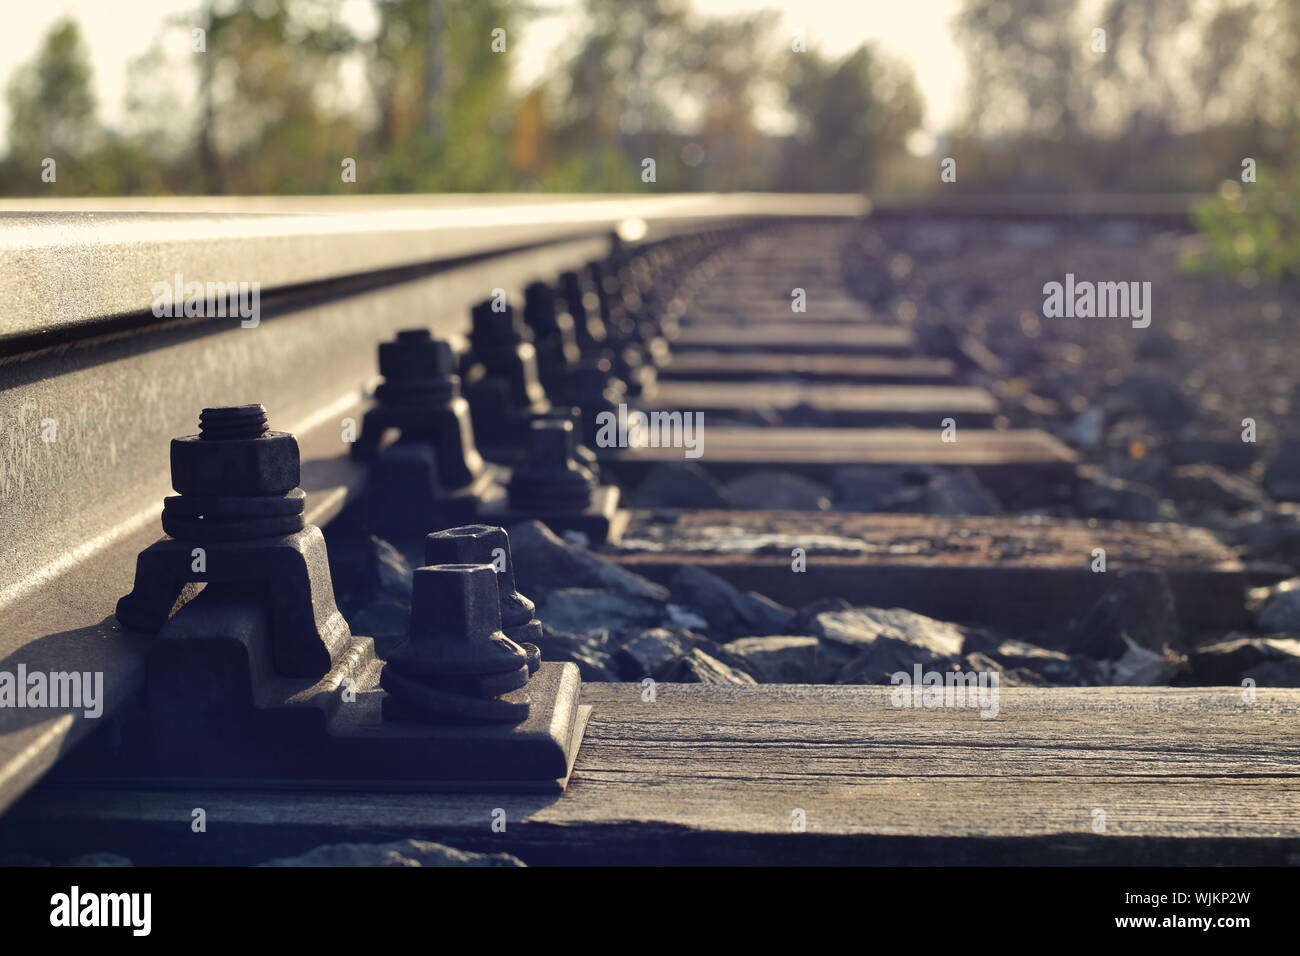 close-up of abandoned rusted rail with nuts, bolts and weathered wooden sleepers Stock Photo